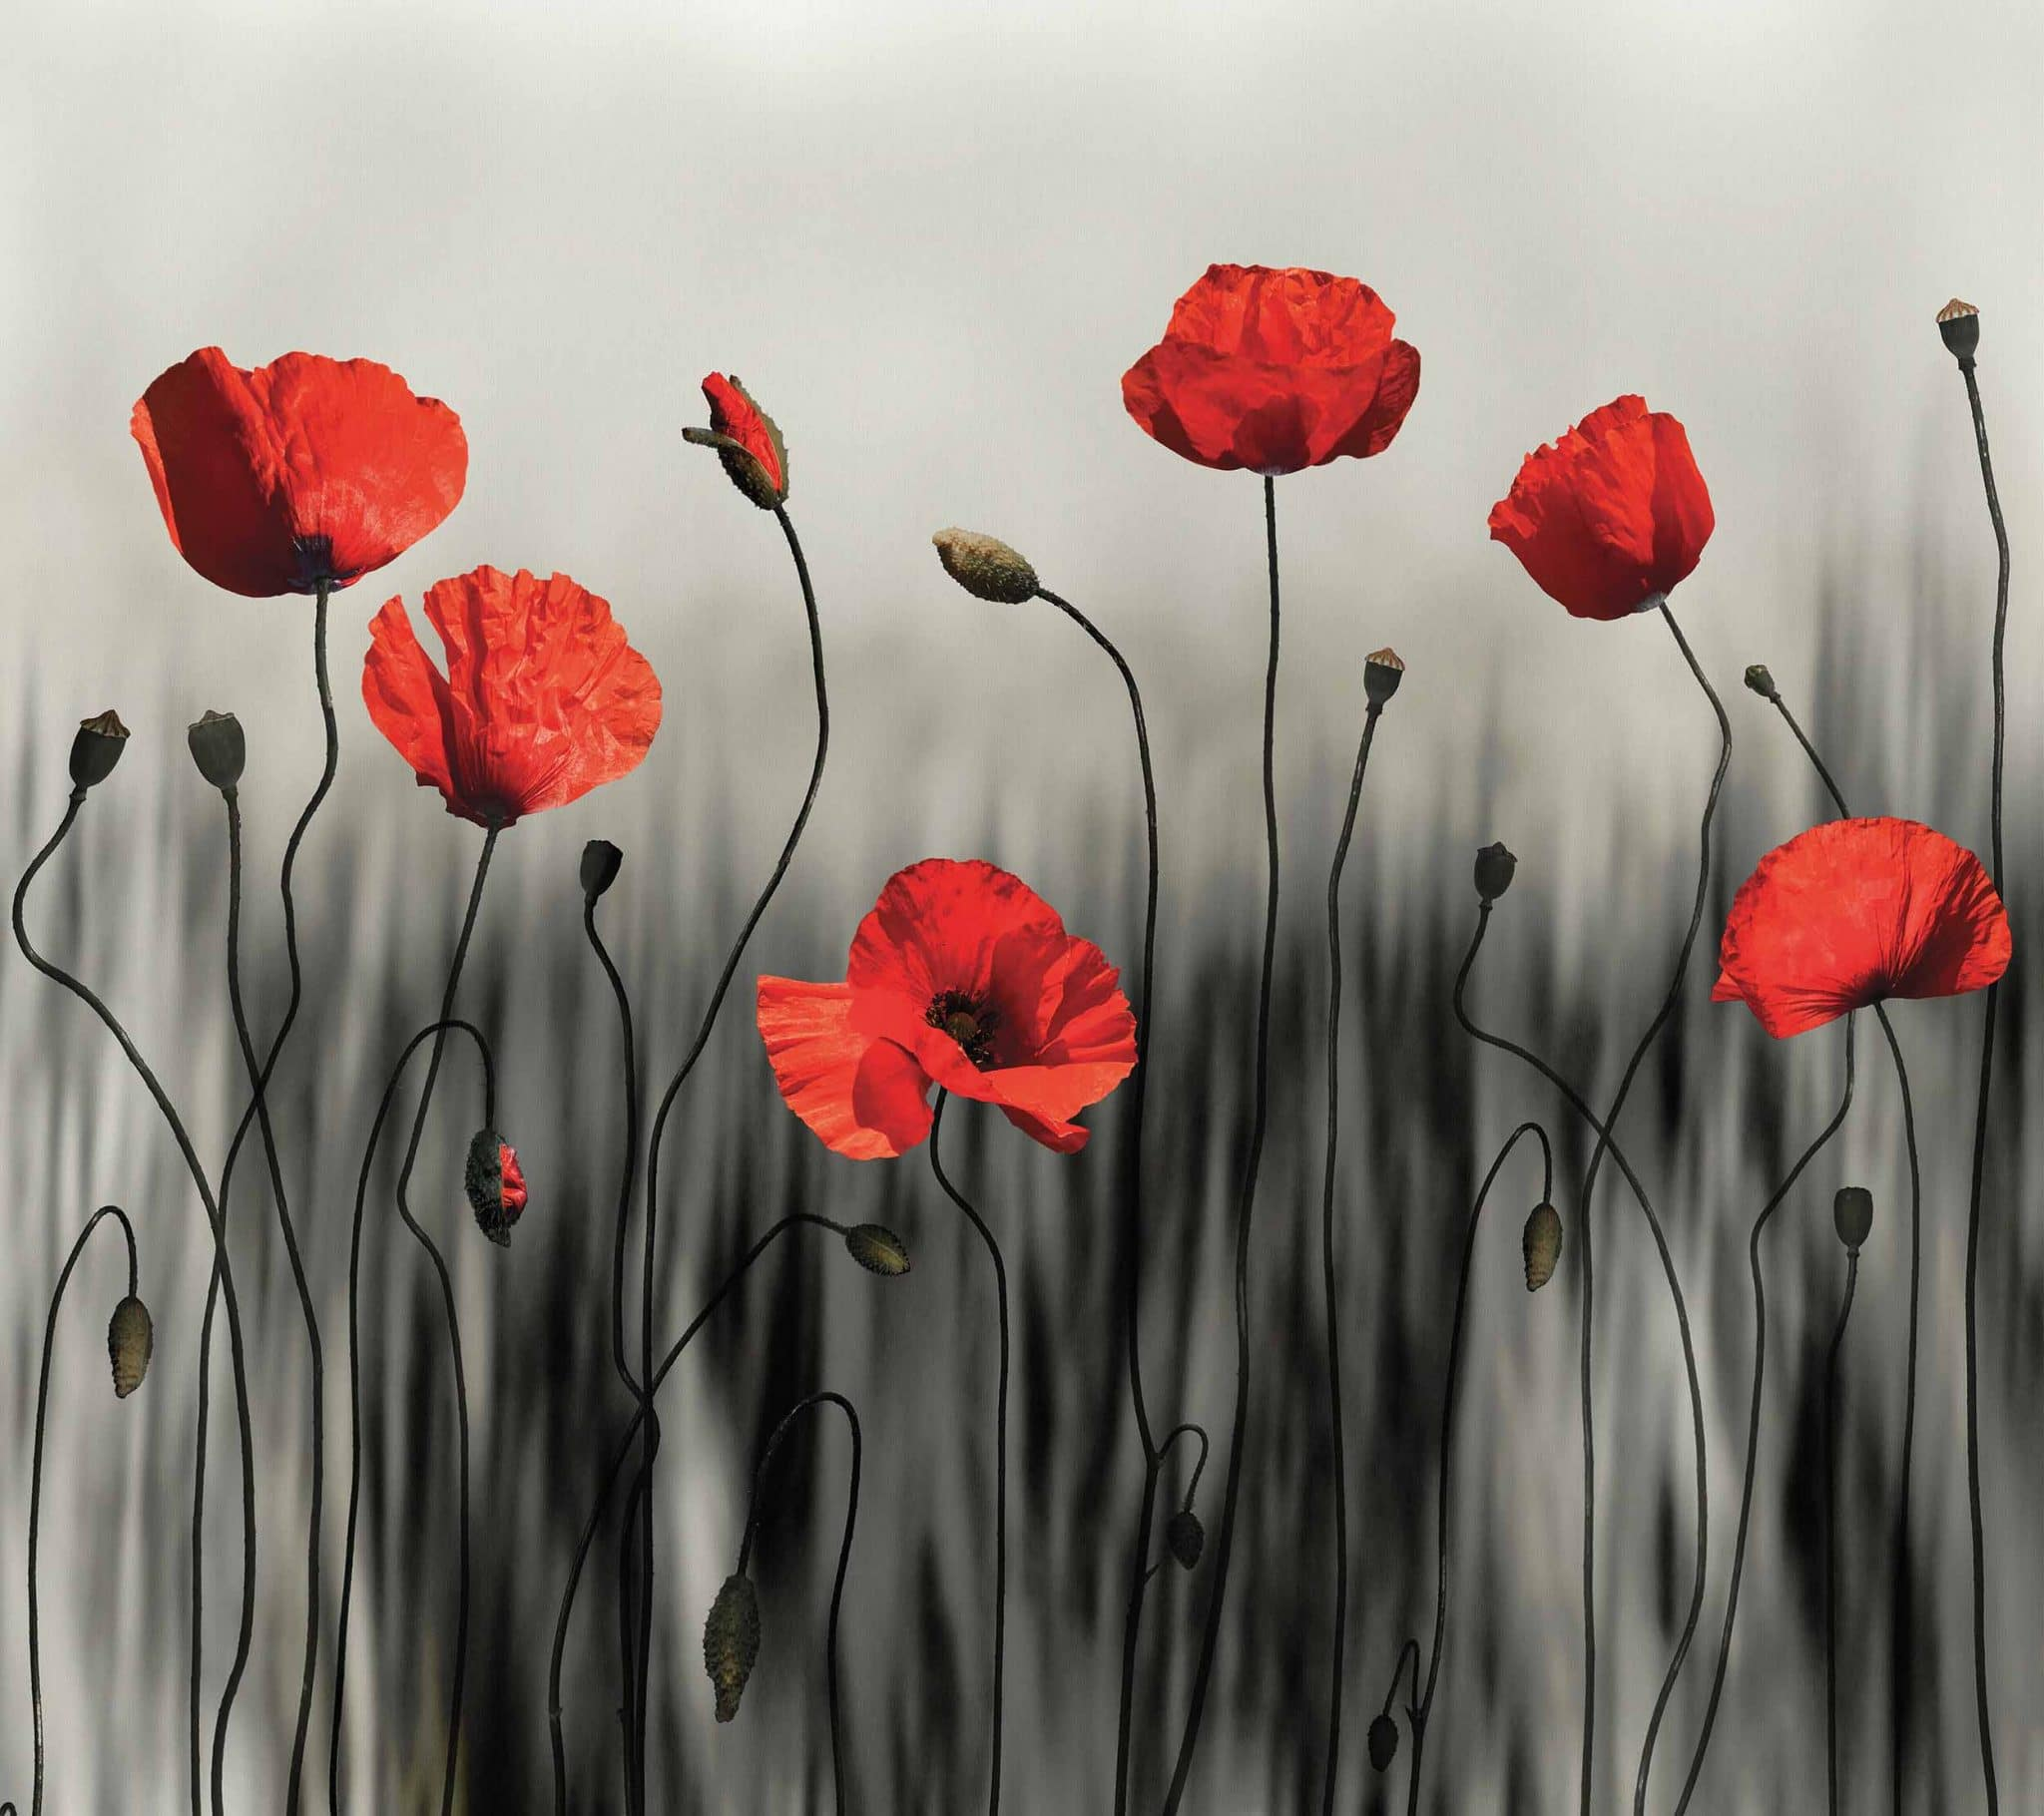 MU1721 Poppy Art 磊 Photo Wallpaper